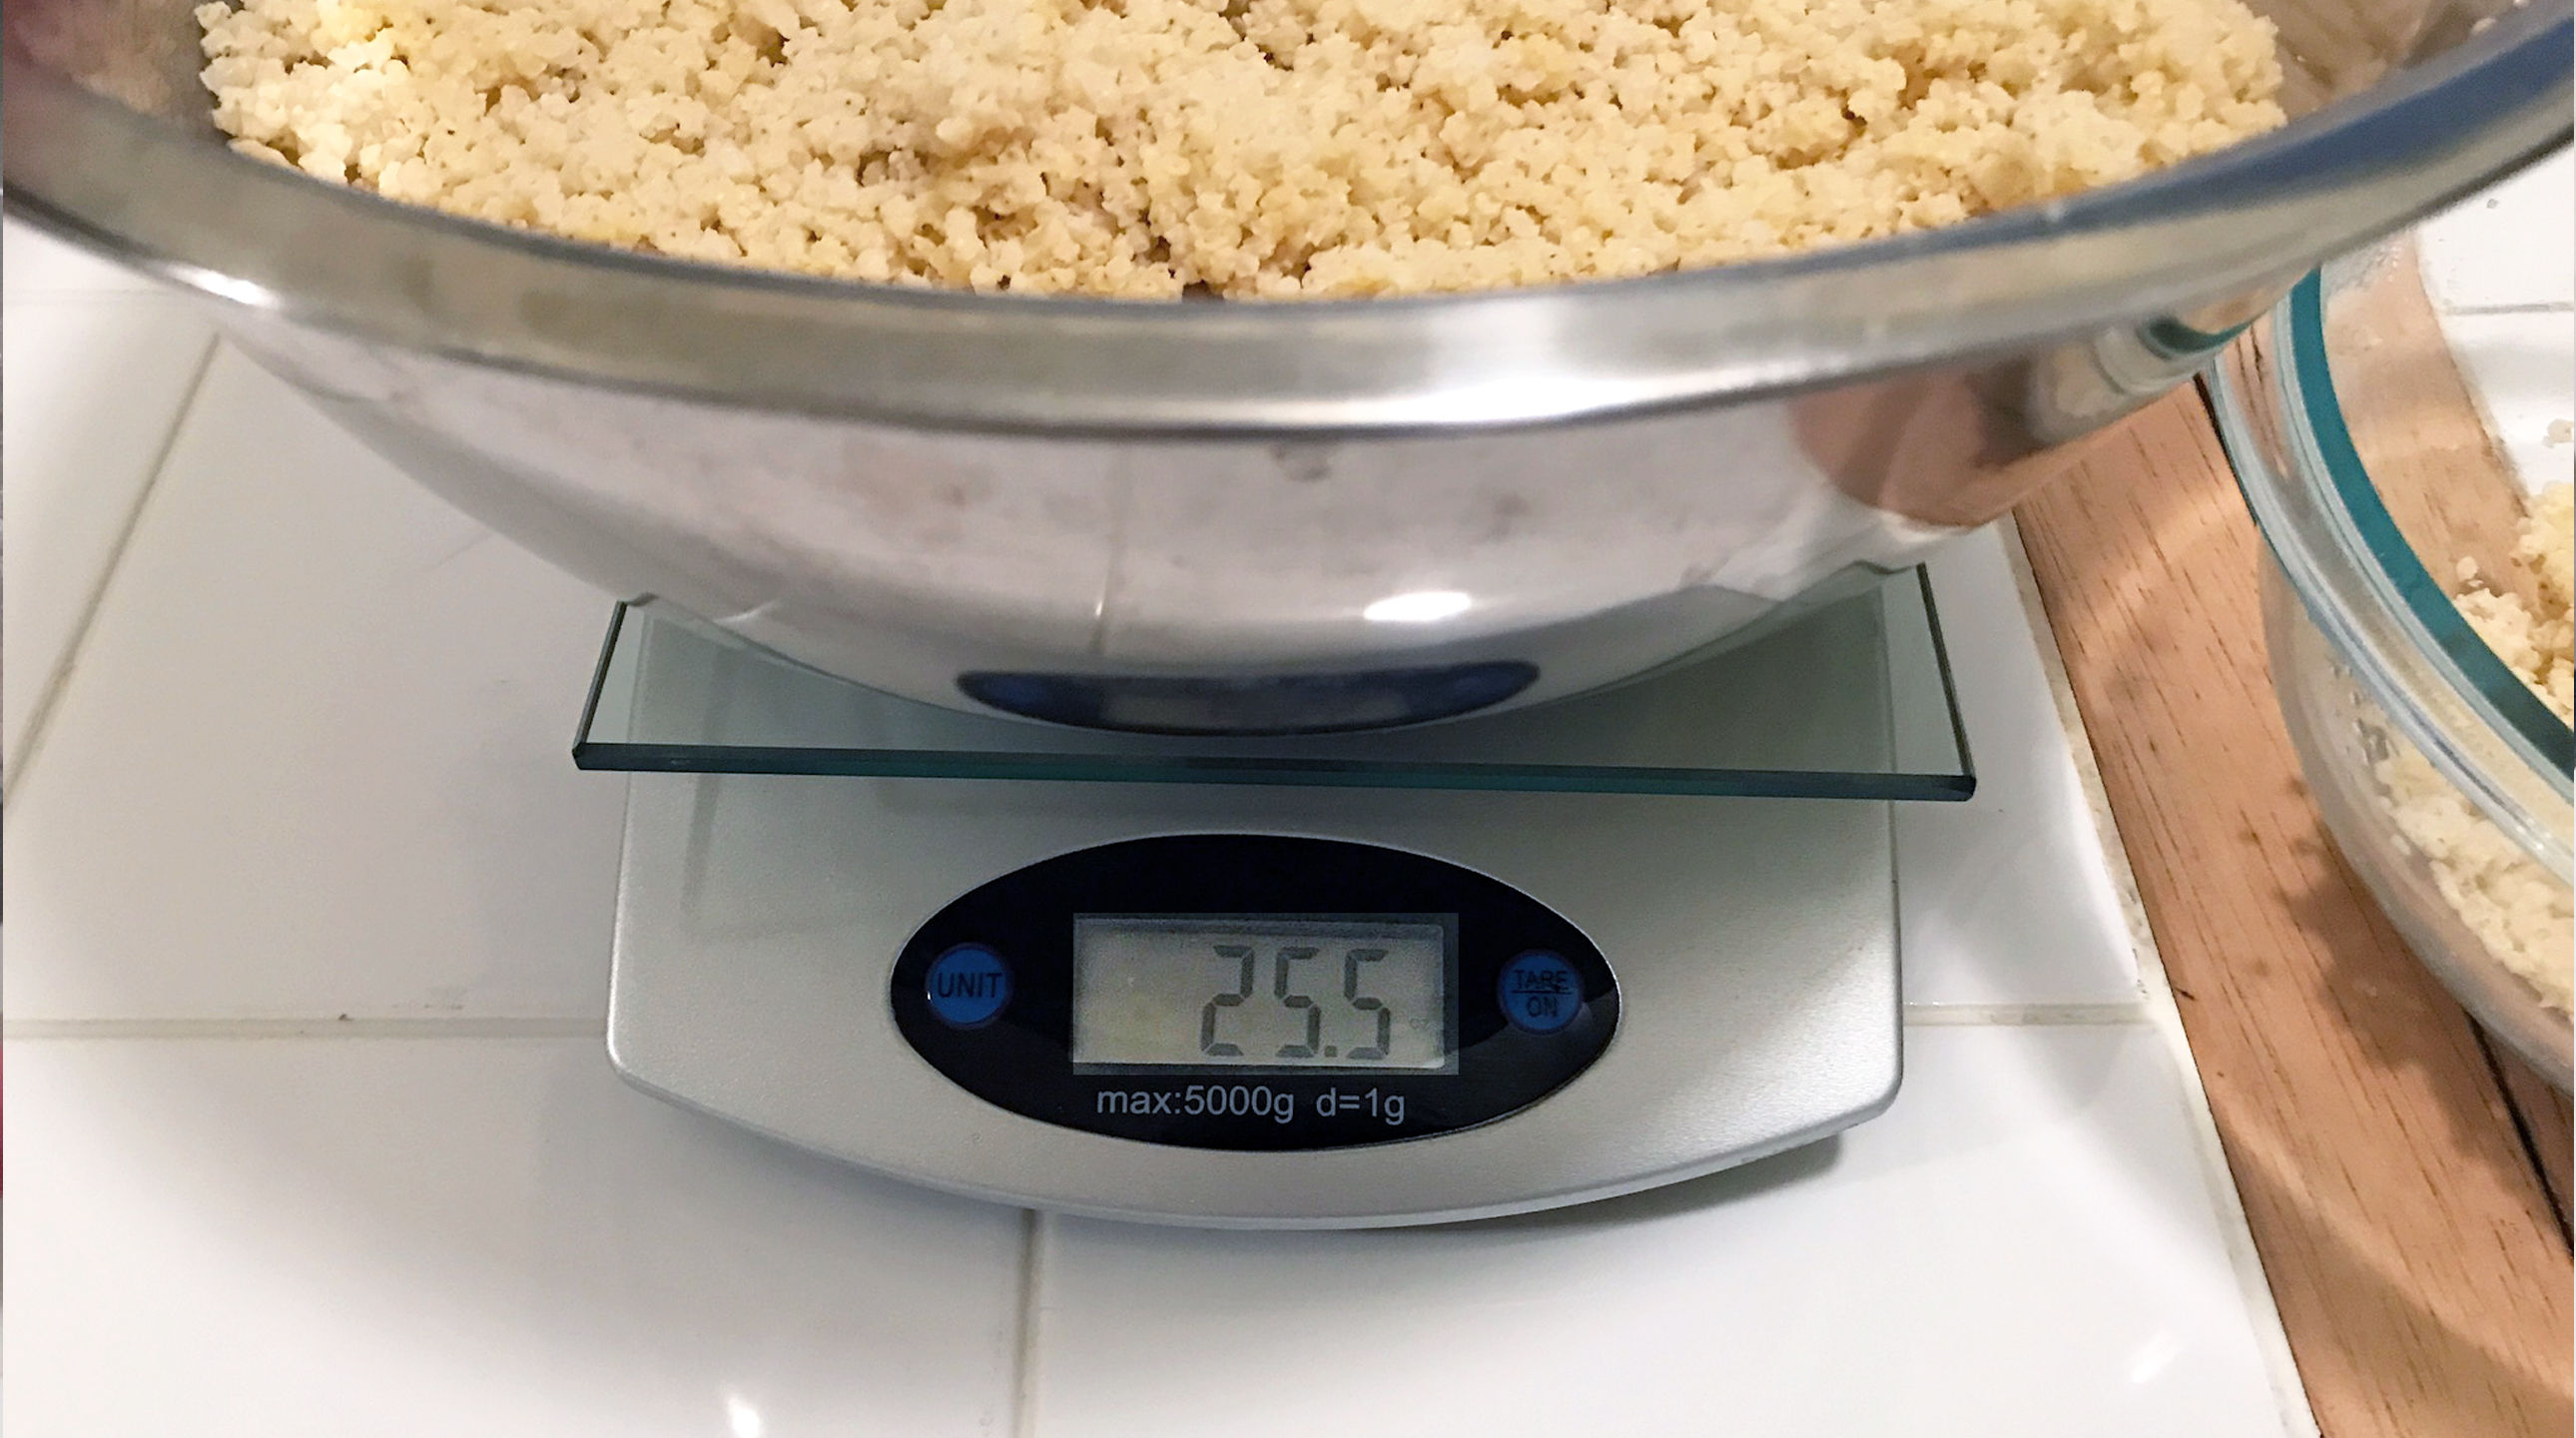 Cooked meat being weighed on a food scale